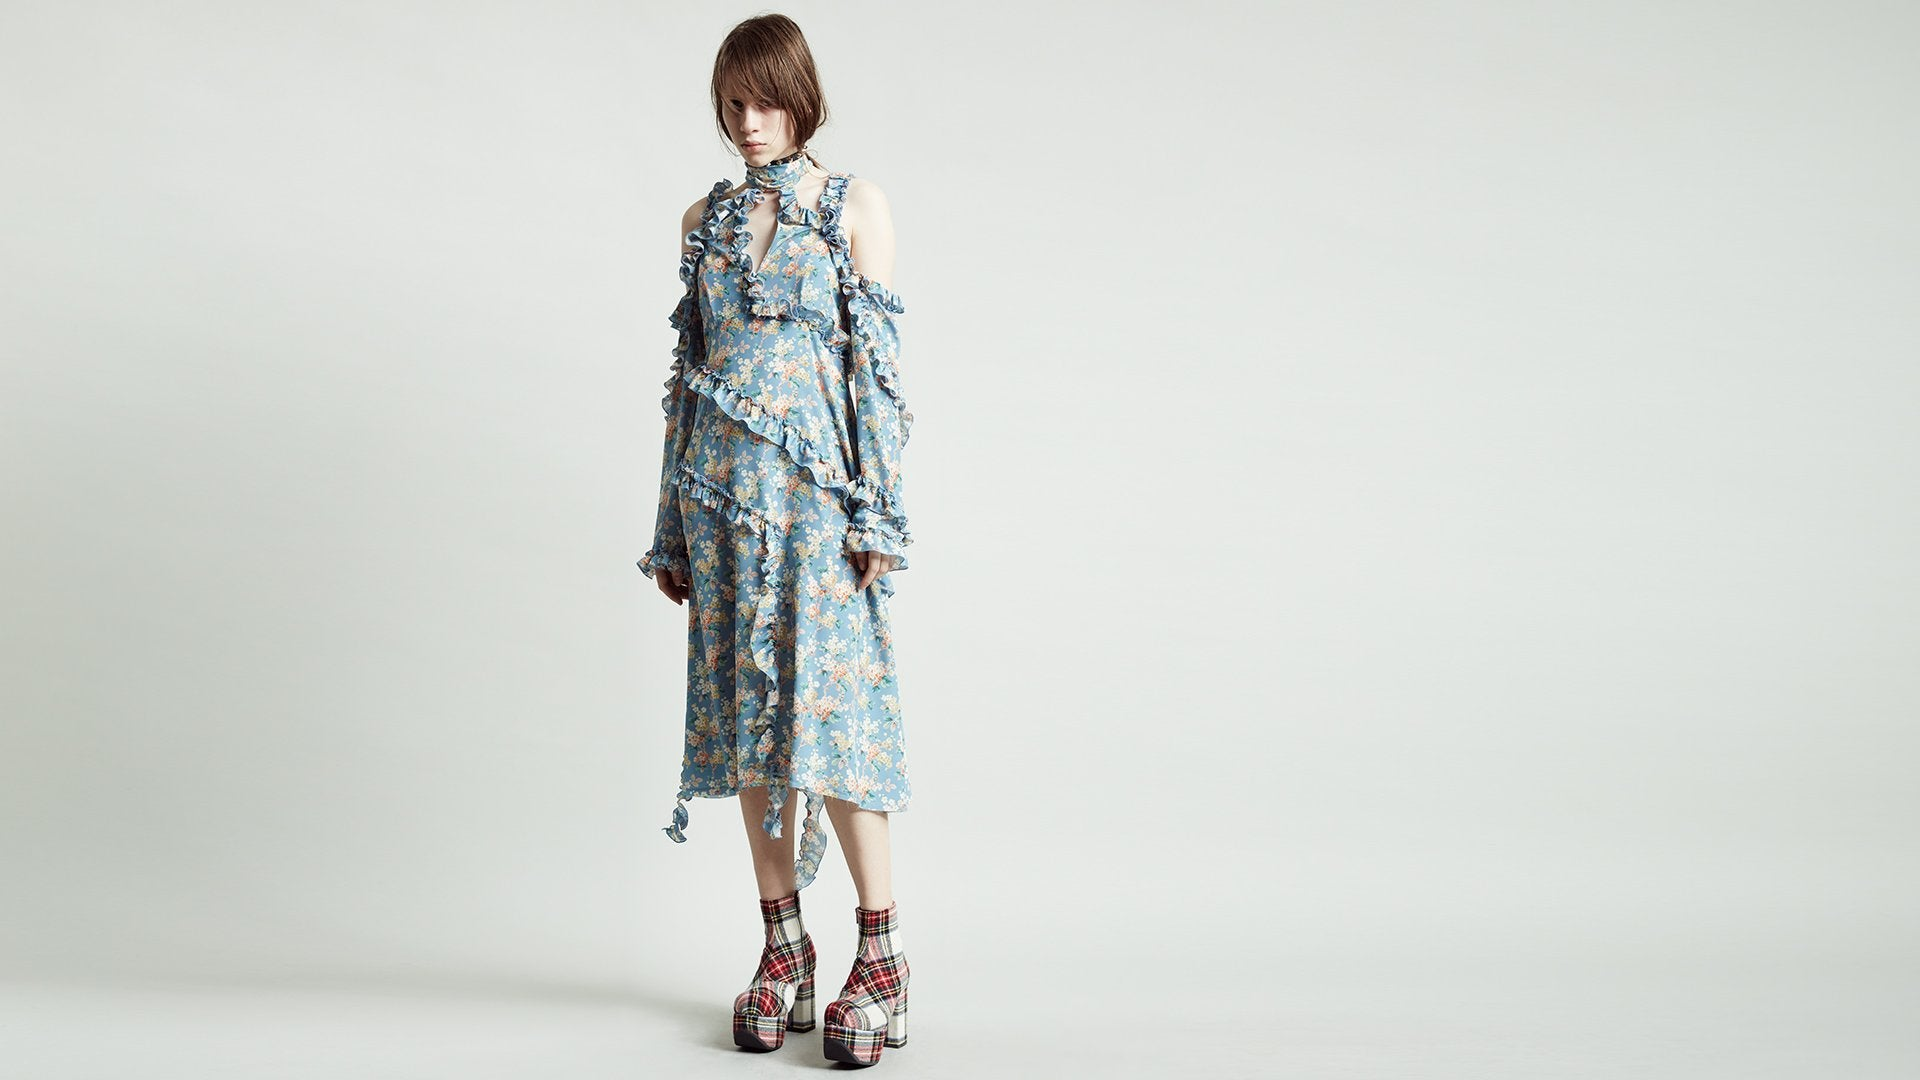 Womens PF18 Lookbook Image 6